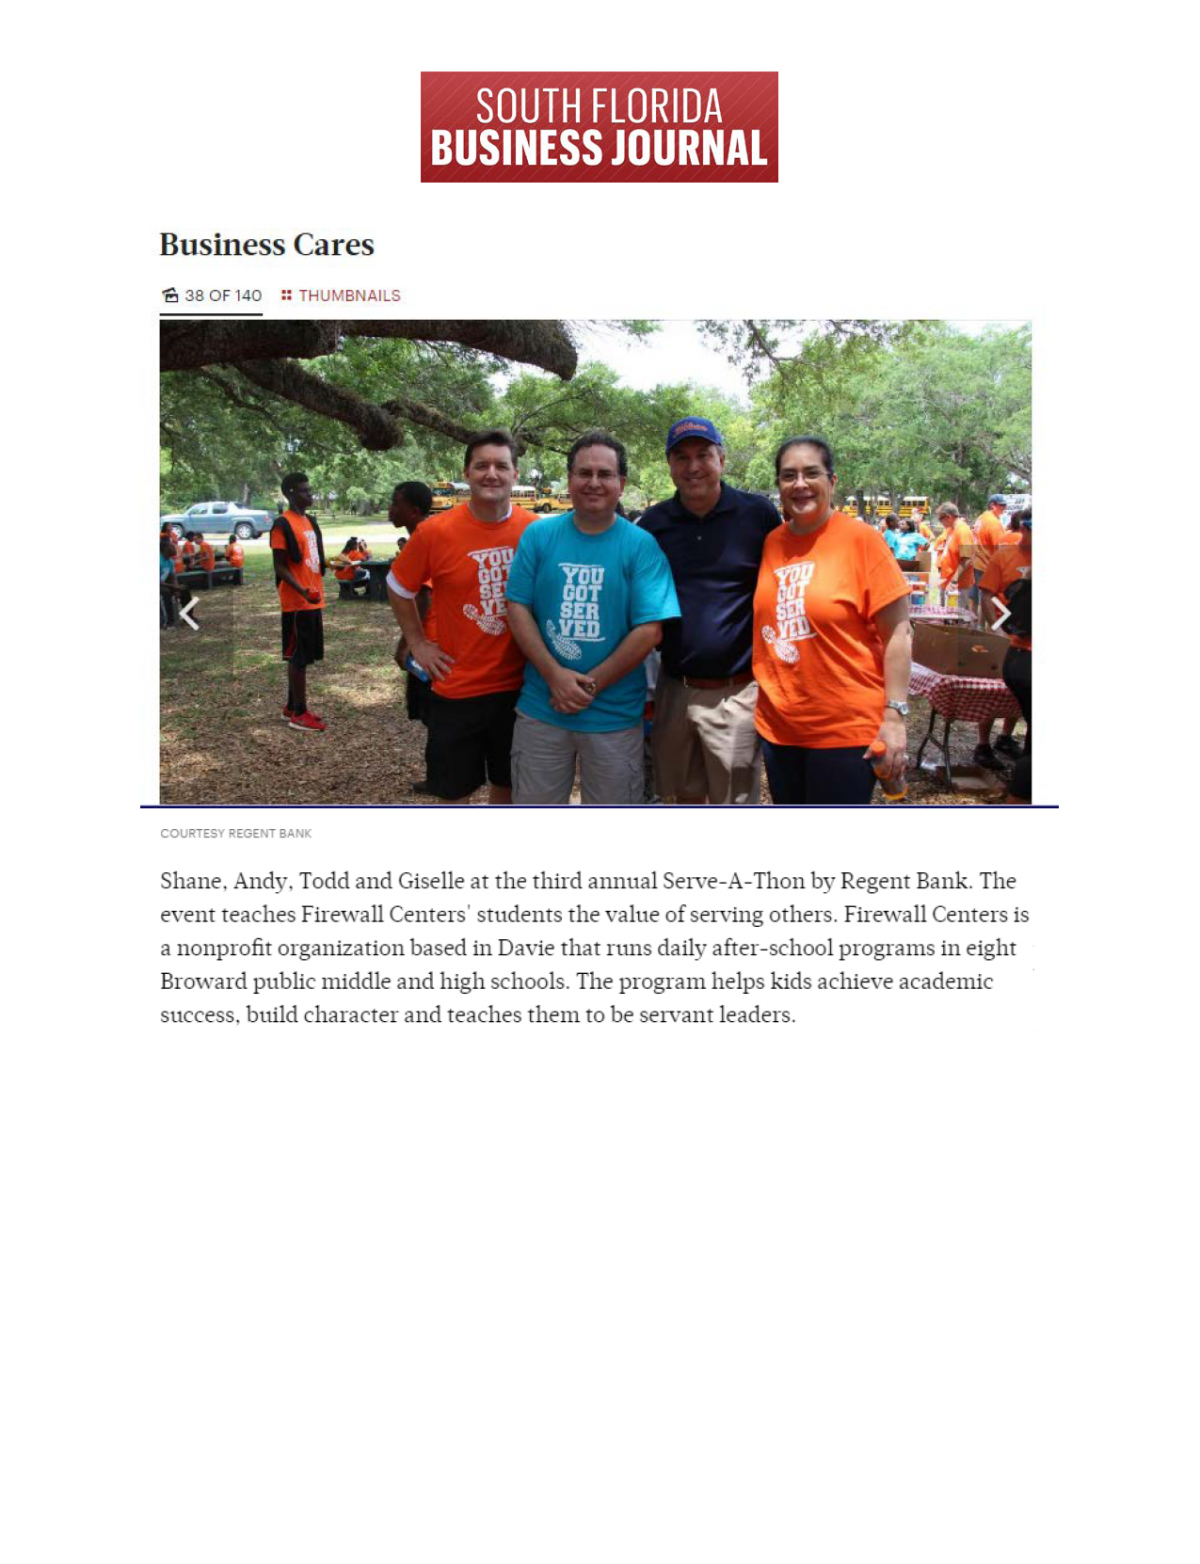 South Florida Business Journal – Business Cares